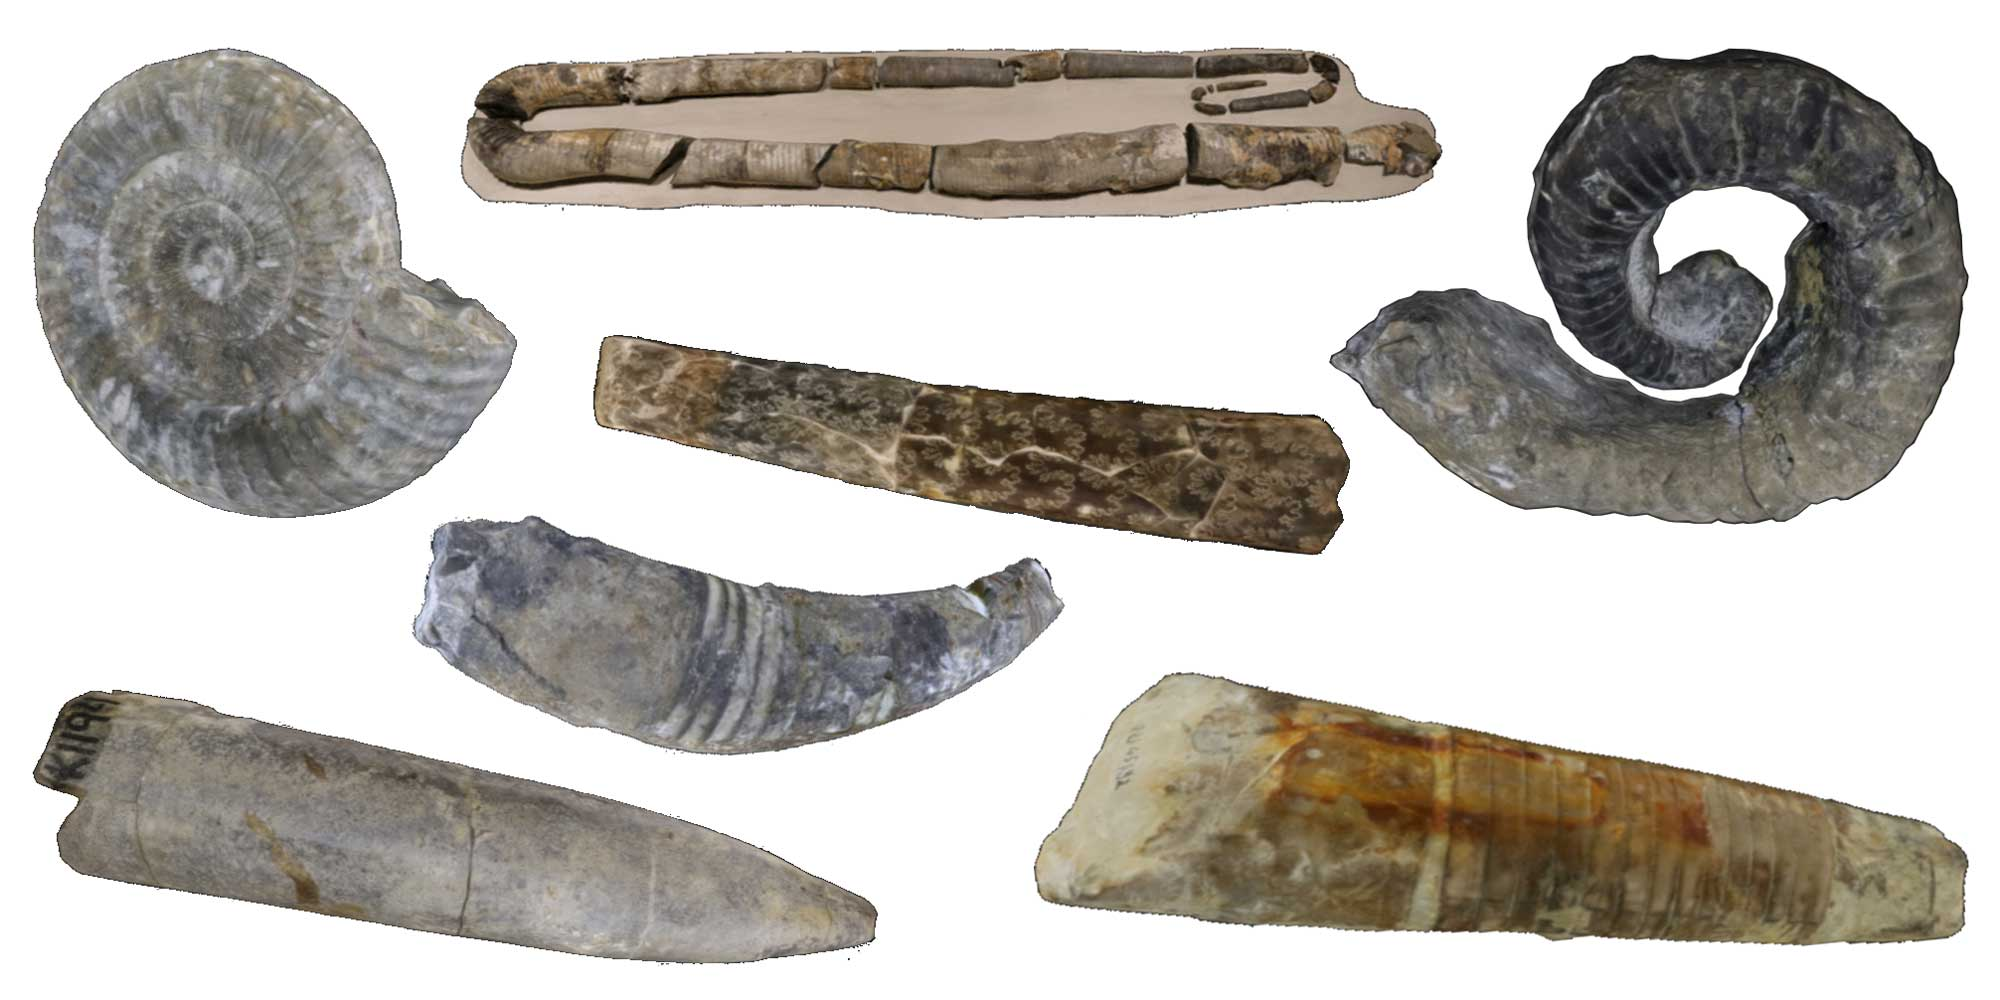 Images of cephalopod fossils.